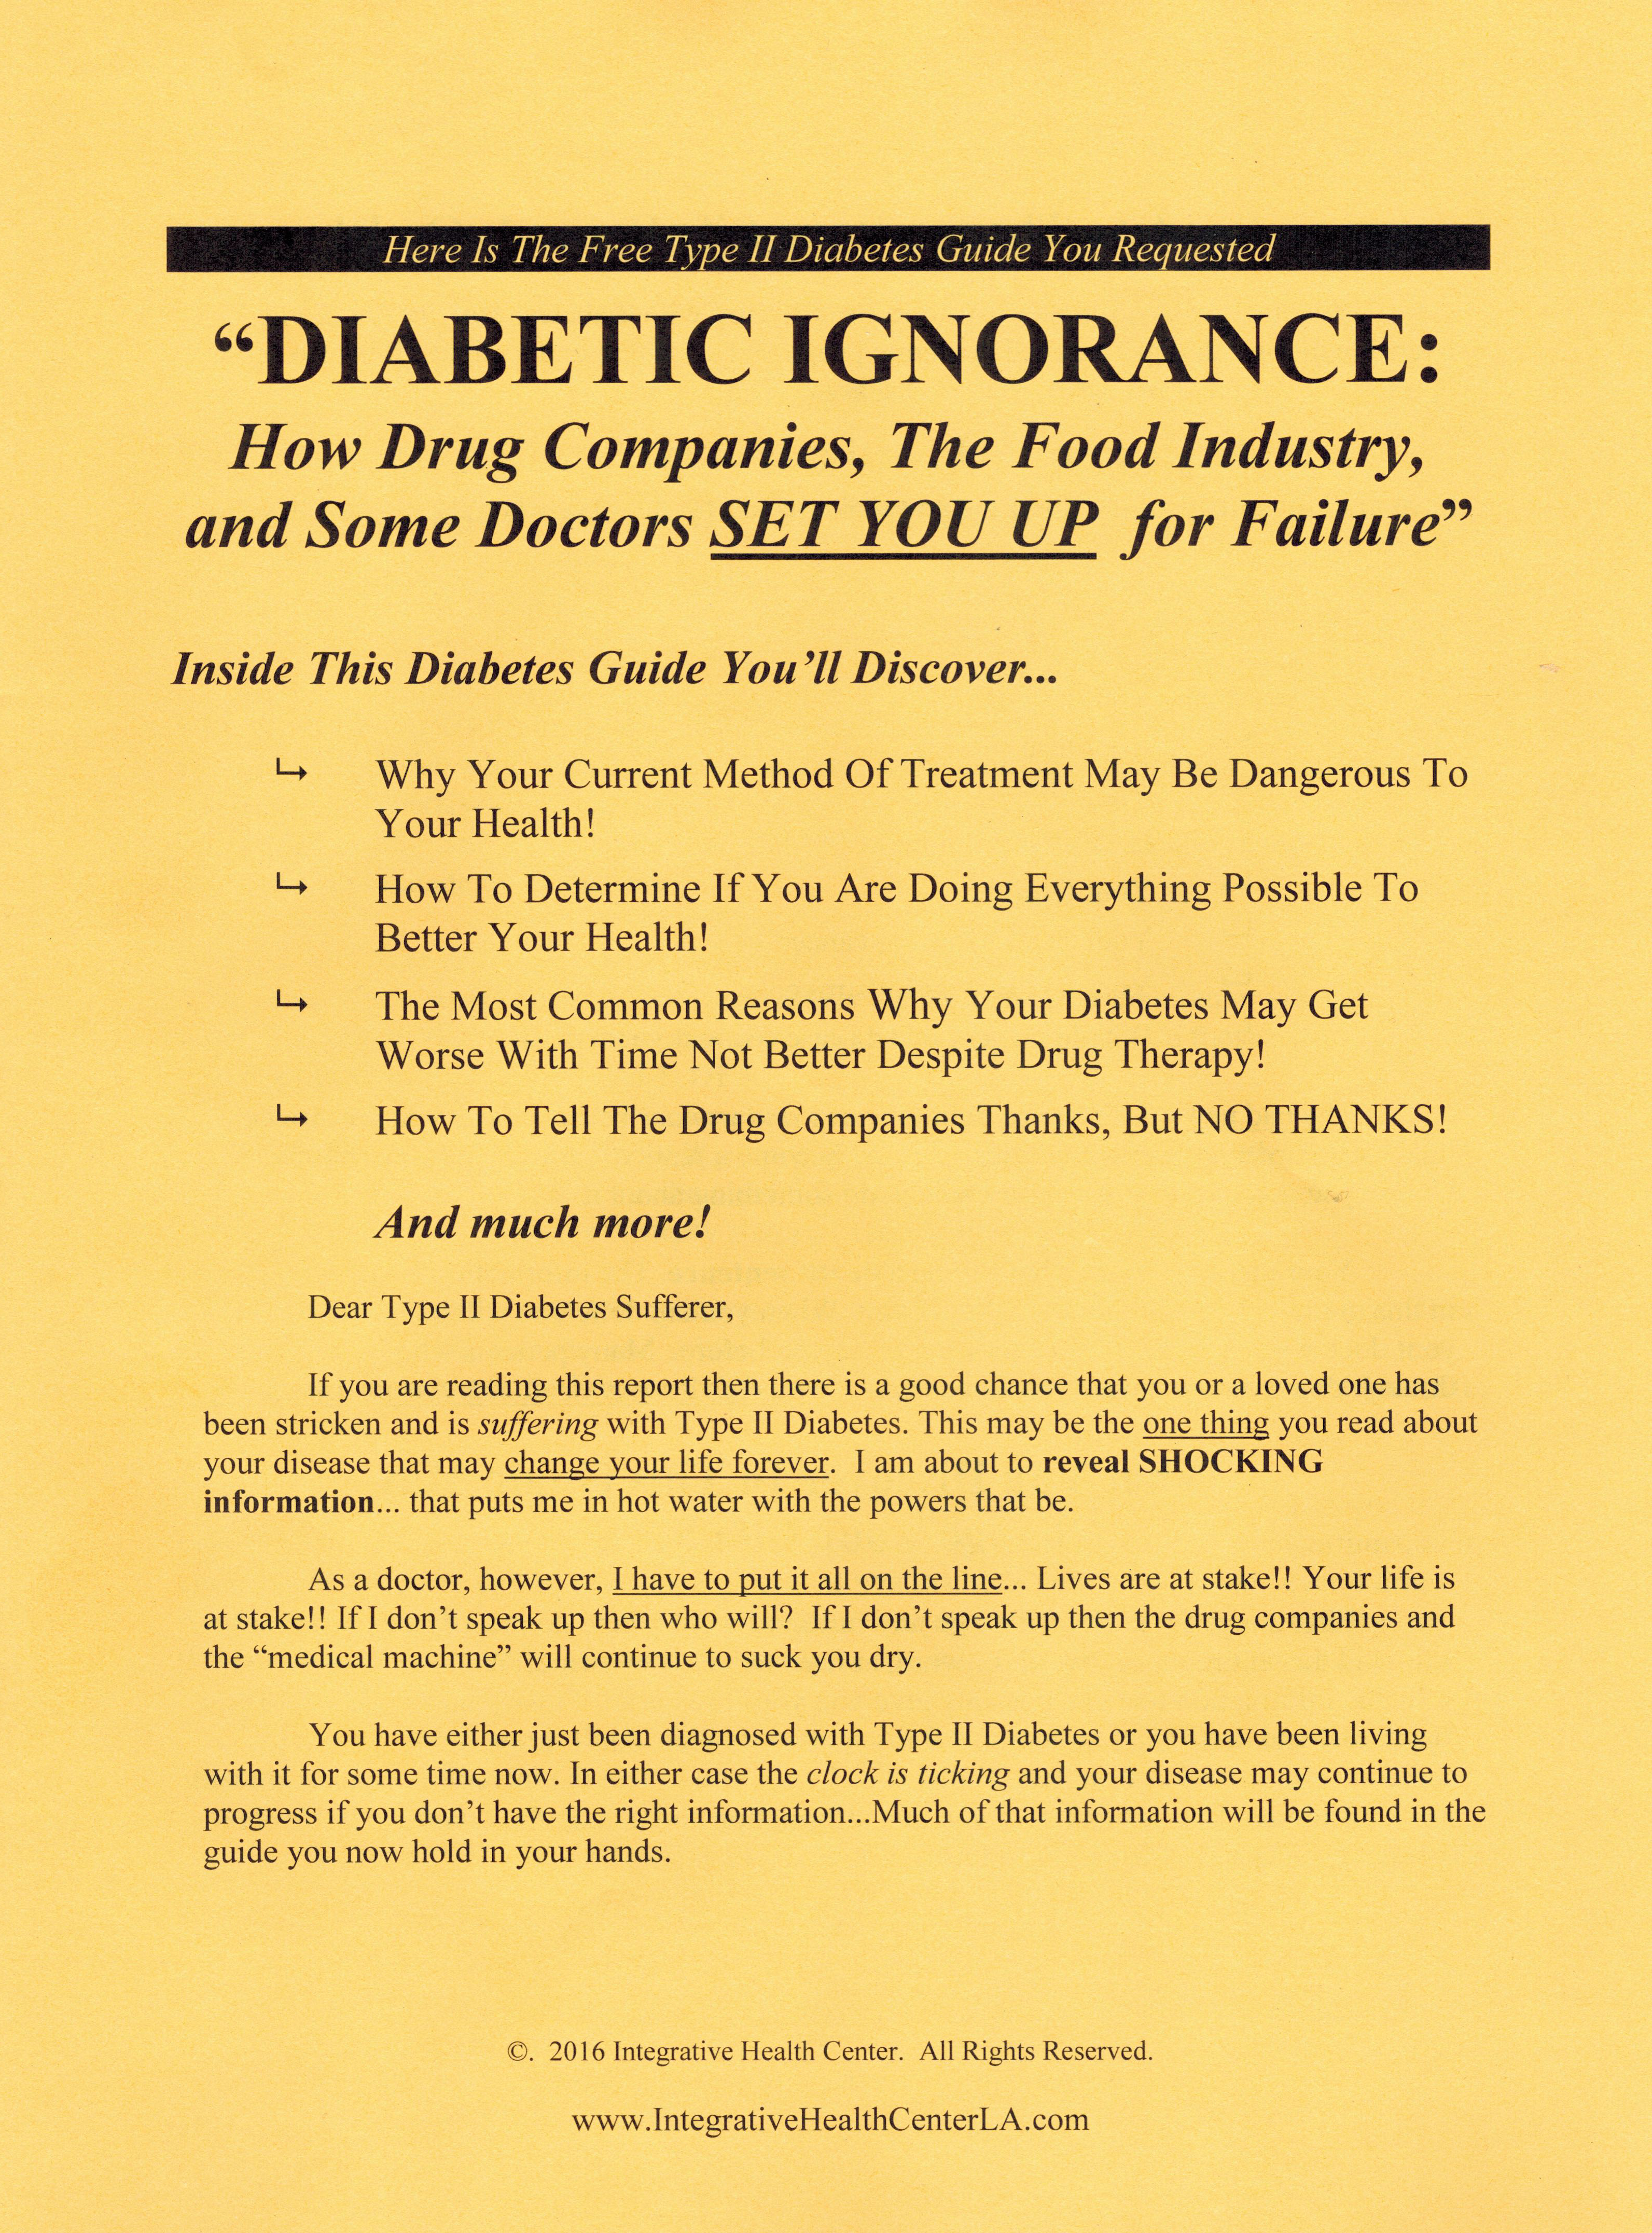 Chiropractors and Diabetes Gimmickry | Skeptical Inquirer